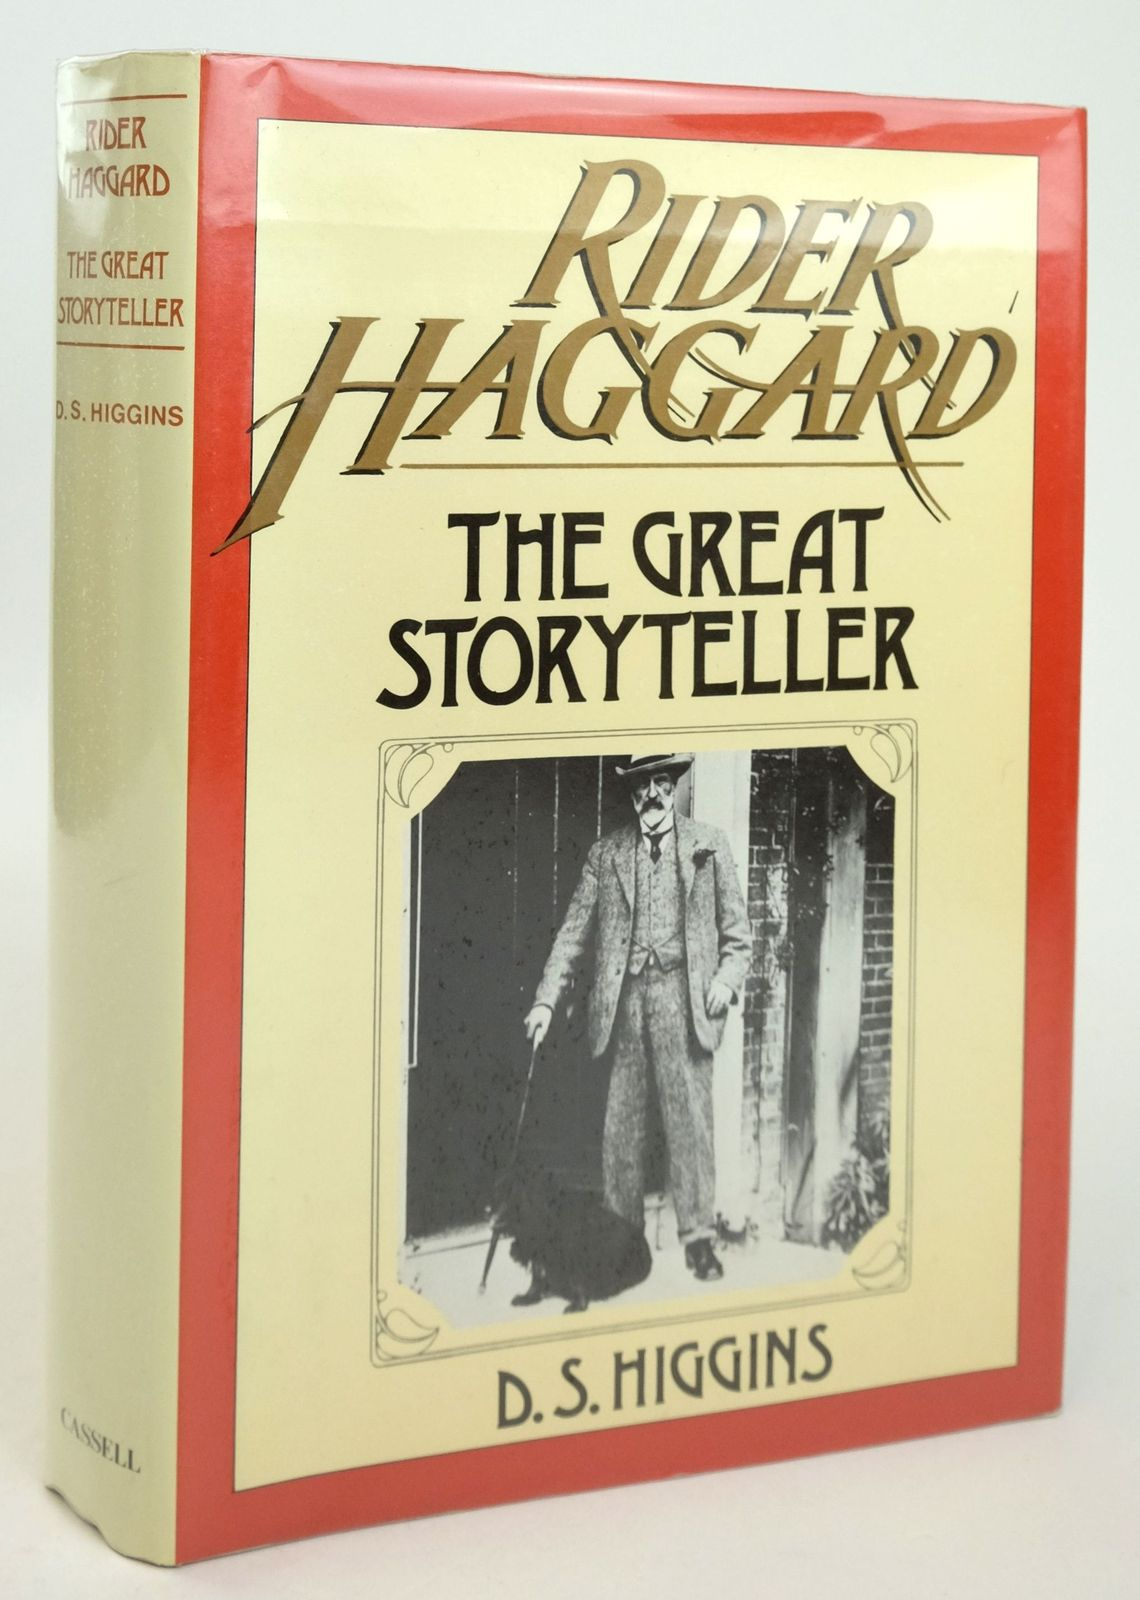 Photo of RIDER HAGGARD: THE GREAT STORYTELLER written by Higgins, D.S. published by Cassell (STOCK CODE: 1819583)  for sale by Stella & Rose's Books